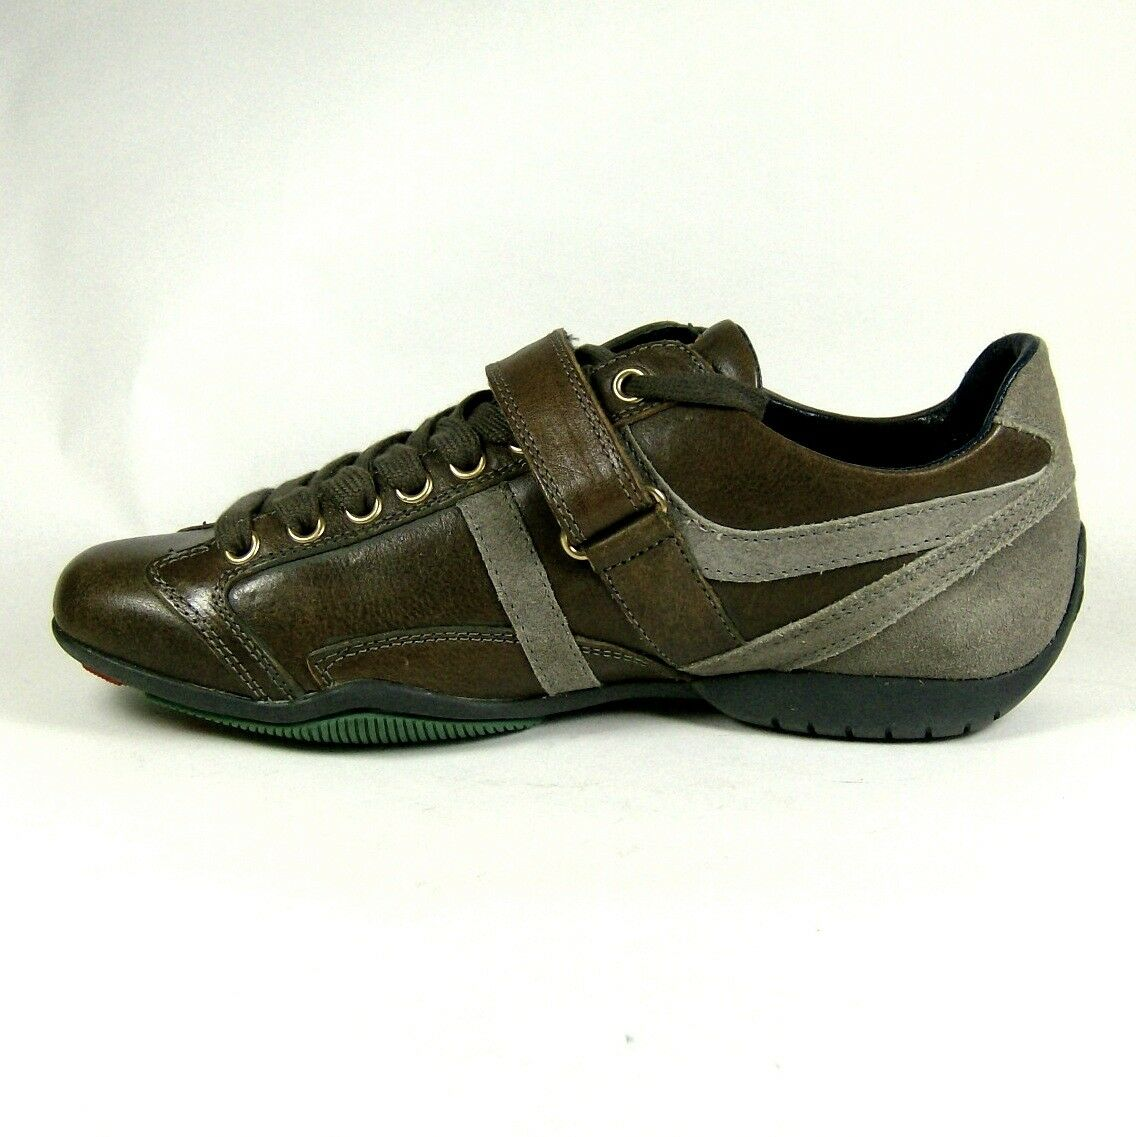 HUGO BOSS Womens Brown 7 Leather Trainers Shoes Size 3 7 Brown 8 a7c1d9